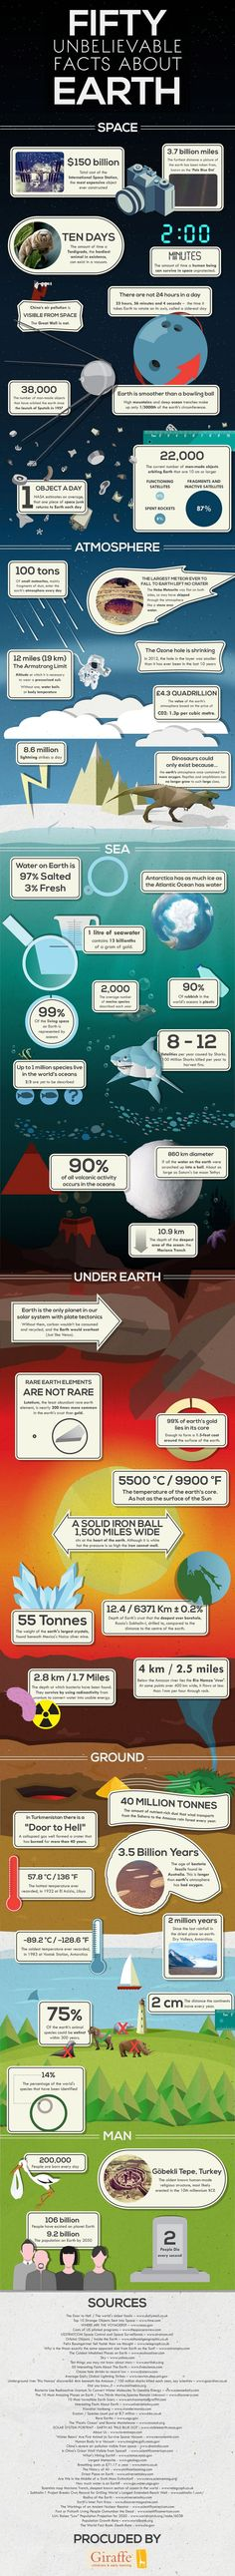 So many facts about earth